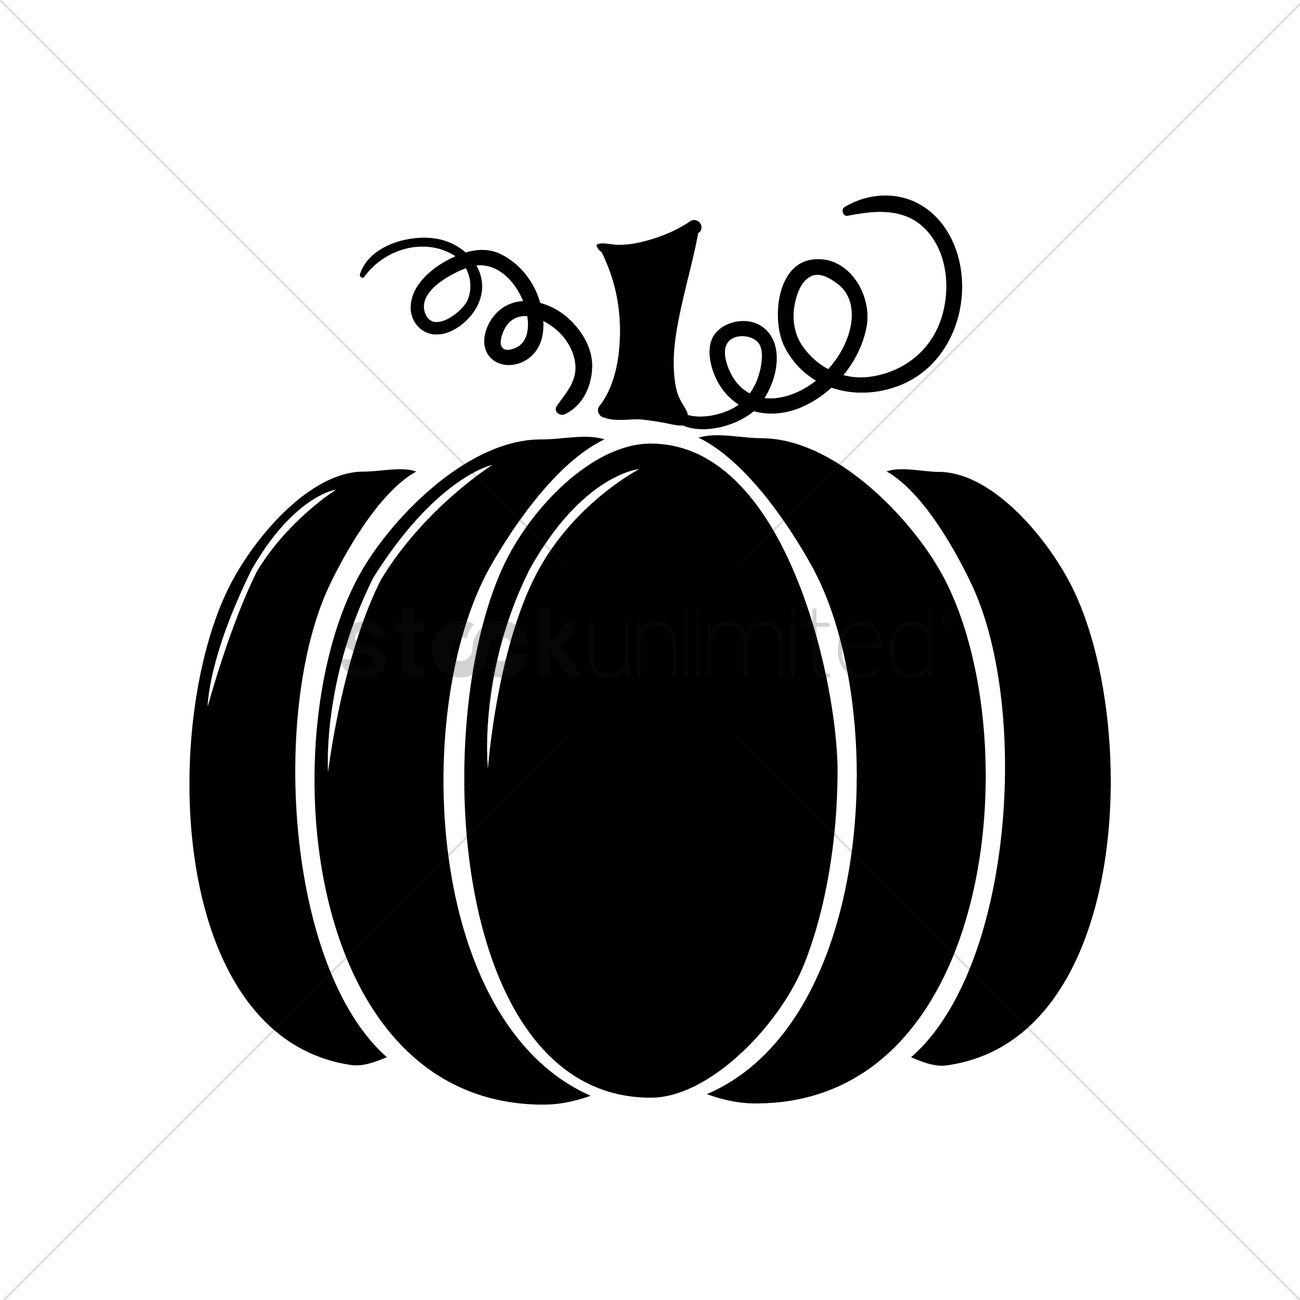 Silhouette of pumpkin Vector Image - 1447191 | StockUnlimited